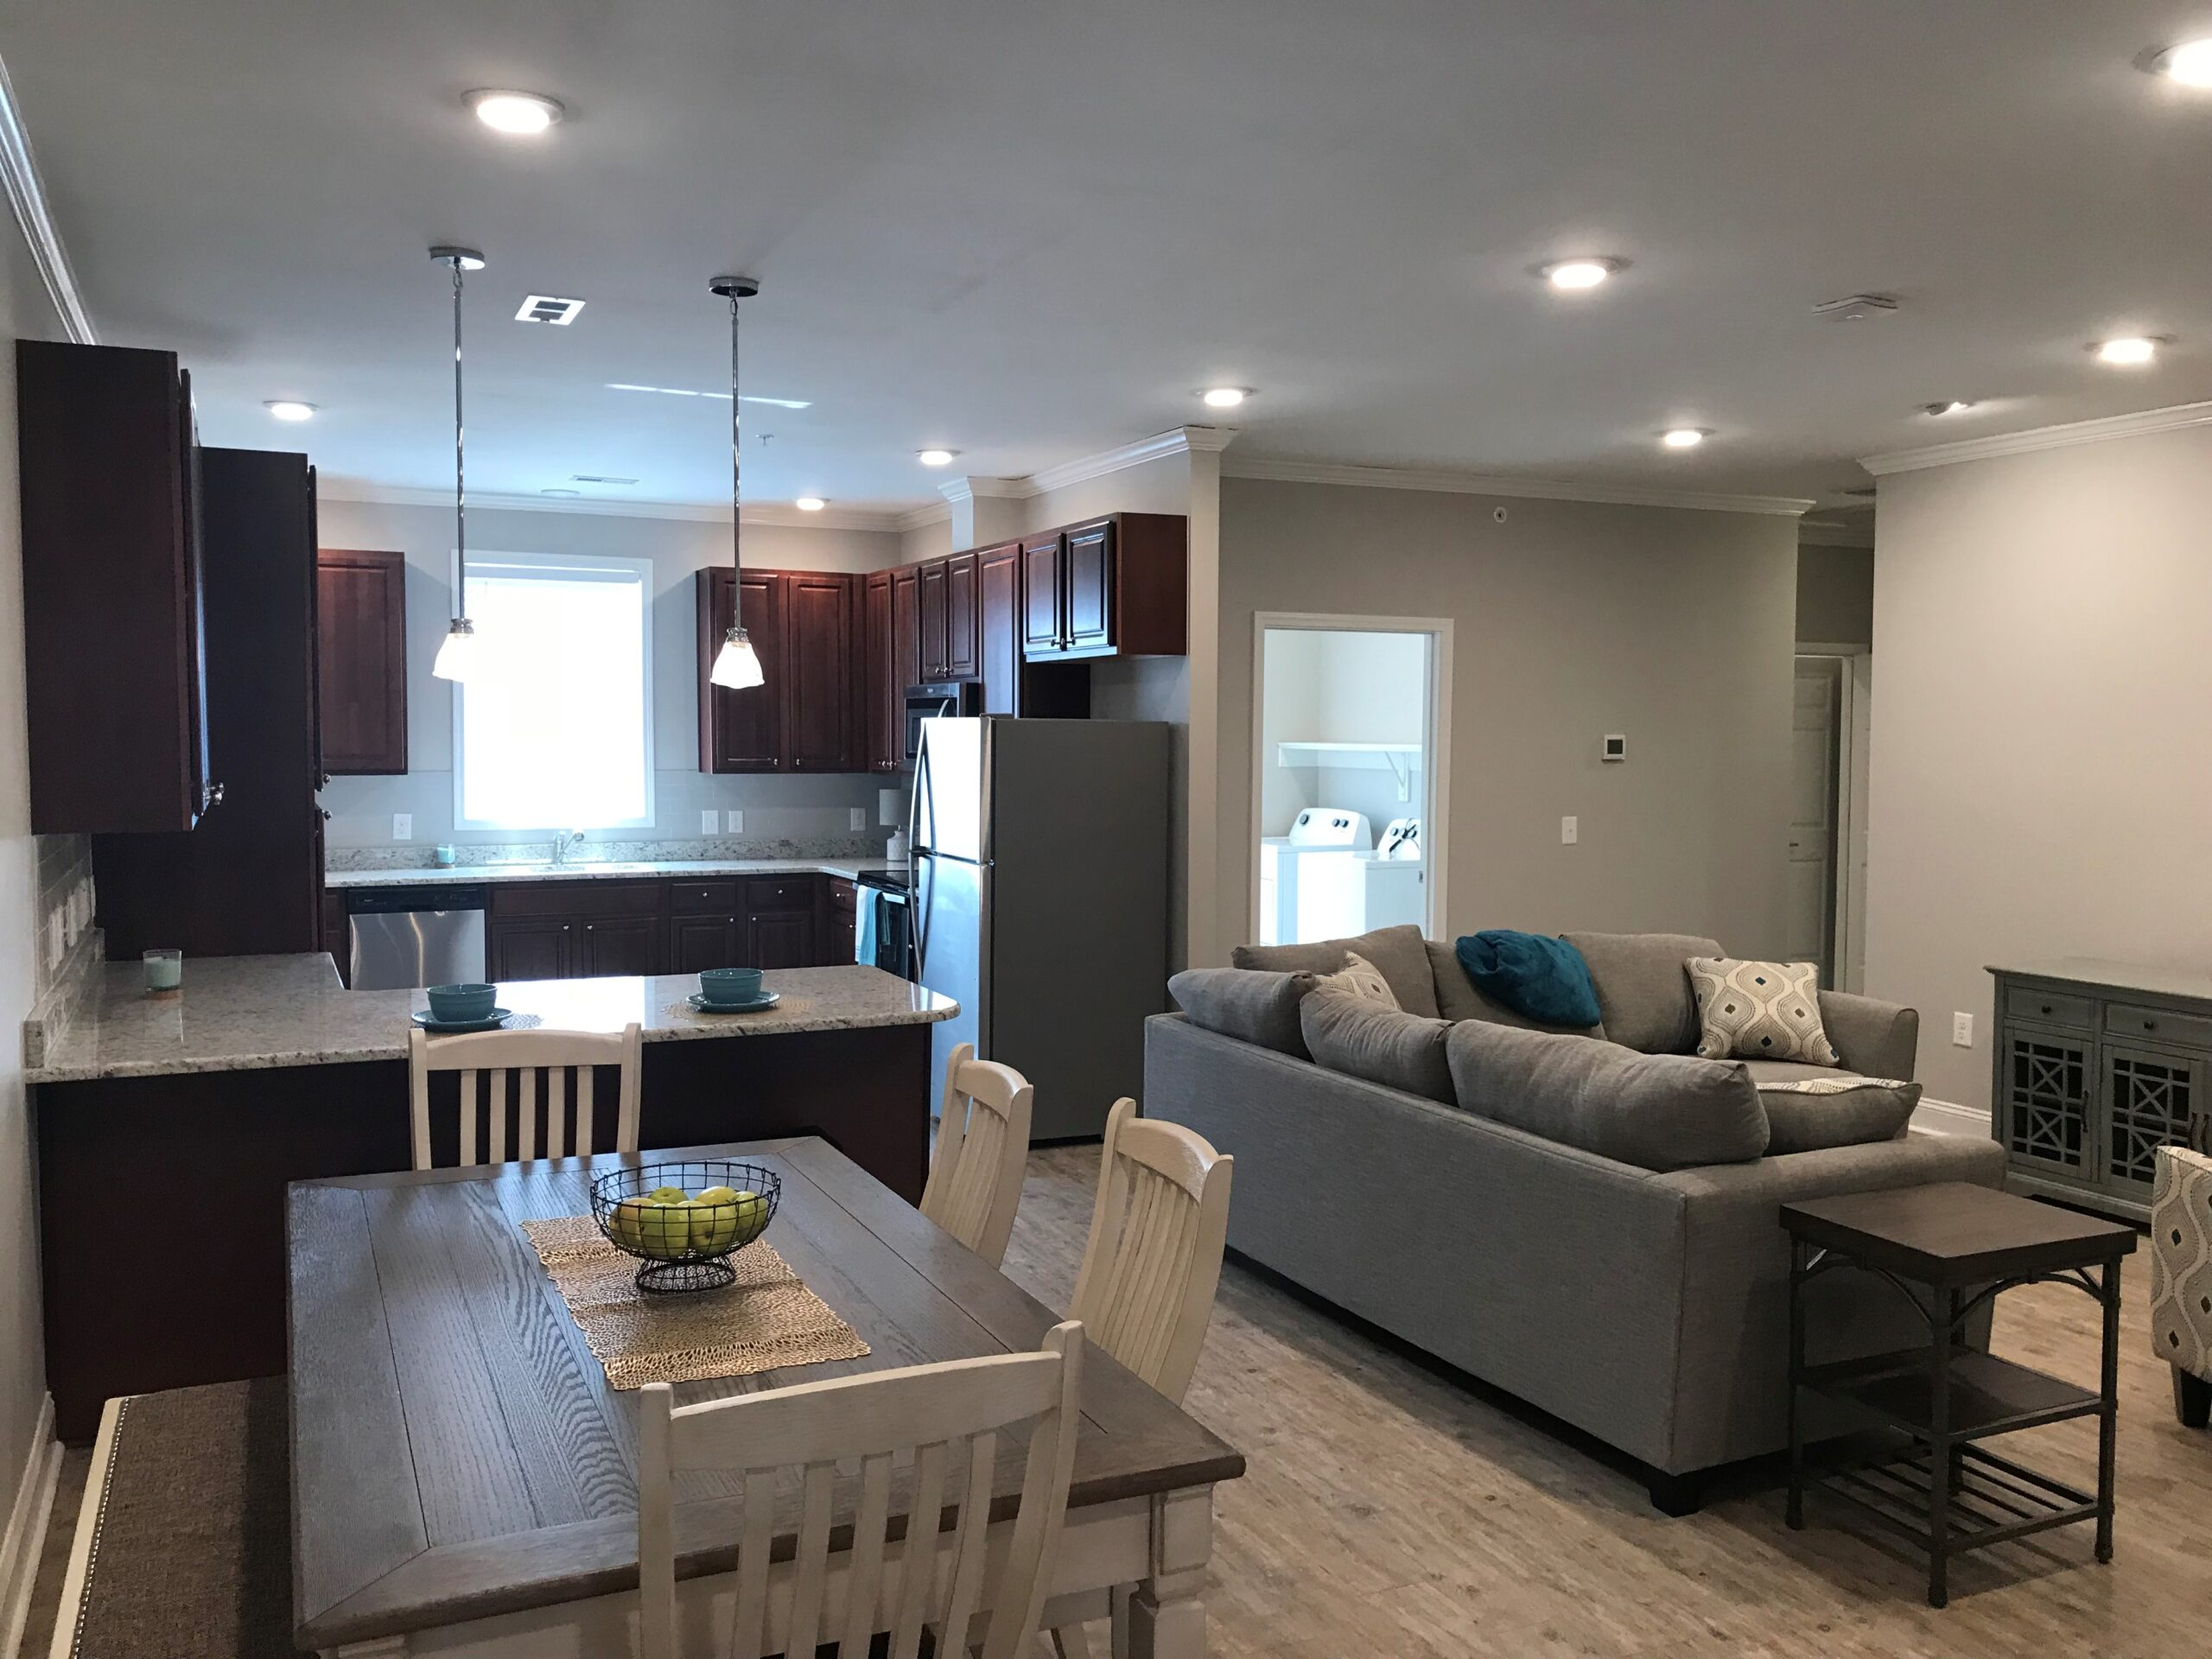 Main room with dining table, couches and kitchen